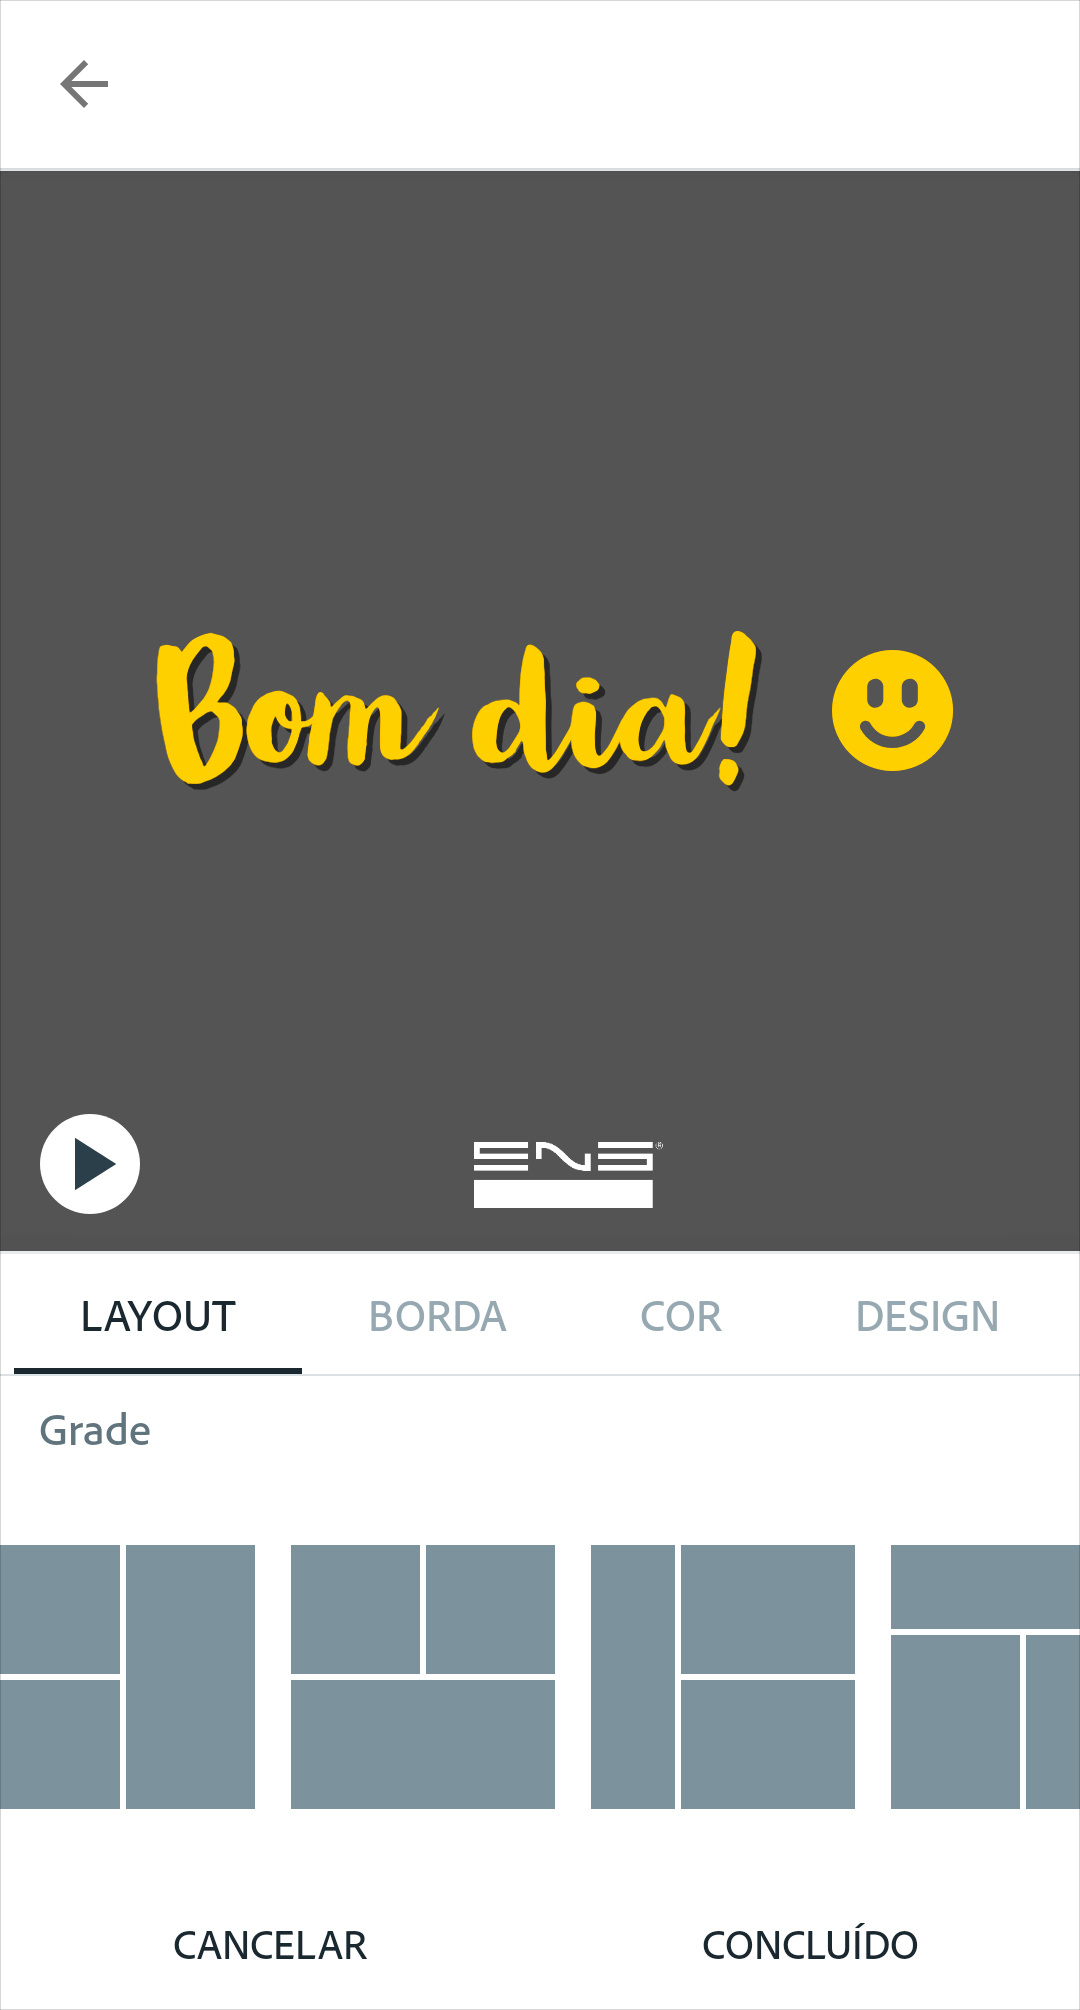 opcao-layout-adobe-spark-post-eng-dtp-multimidia